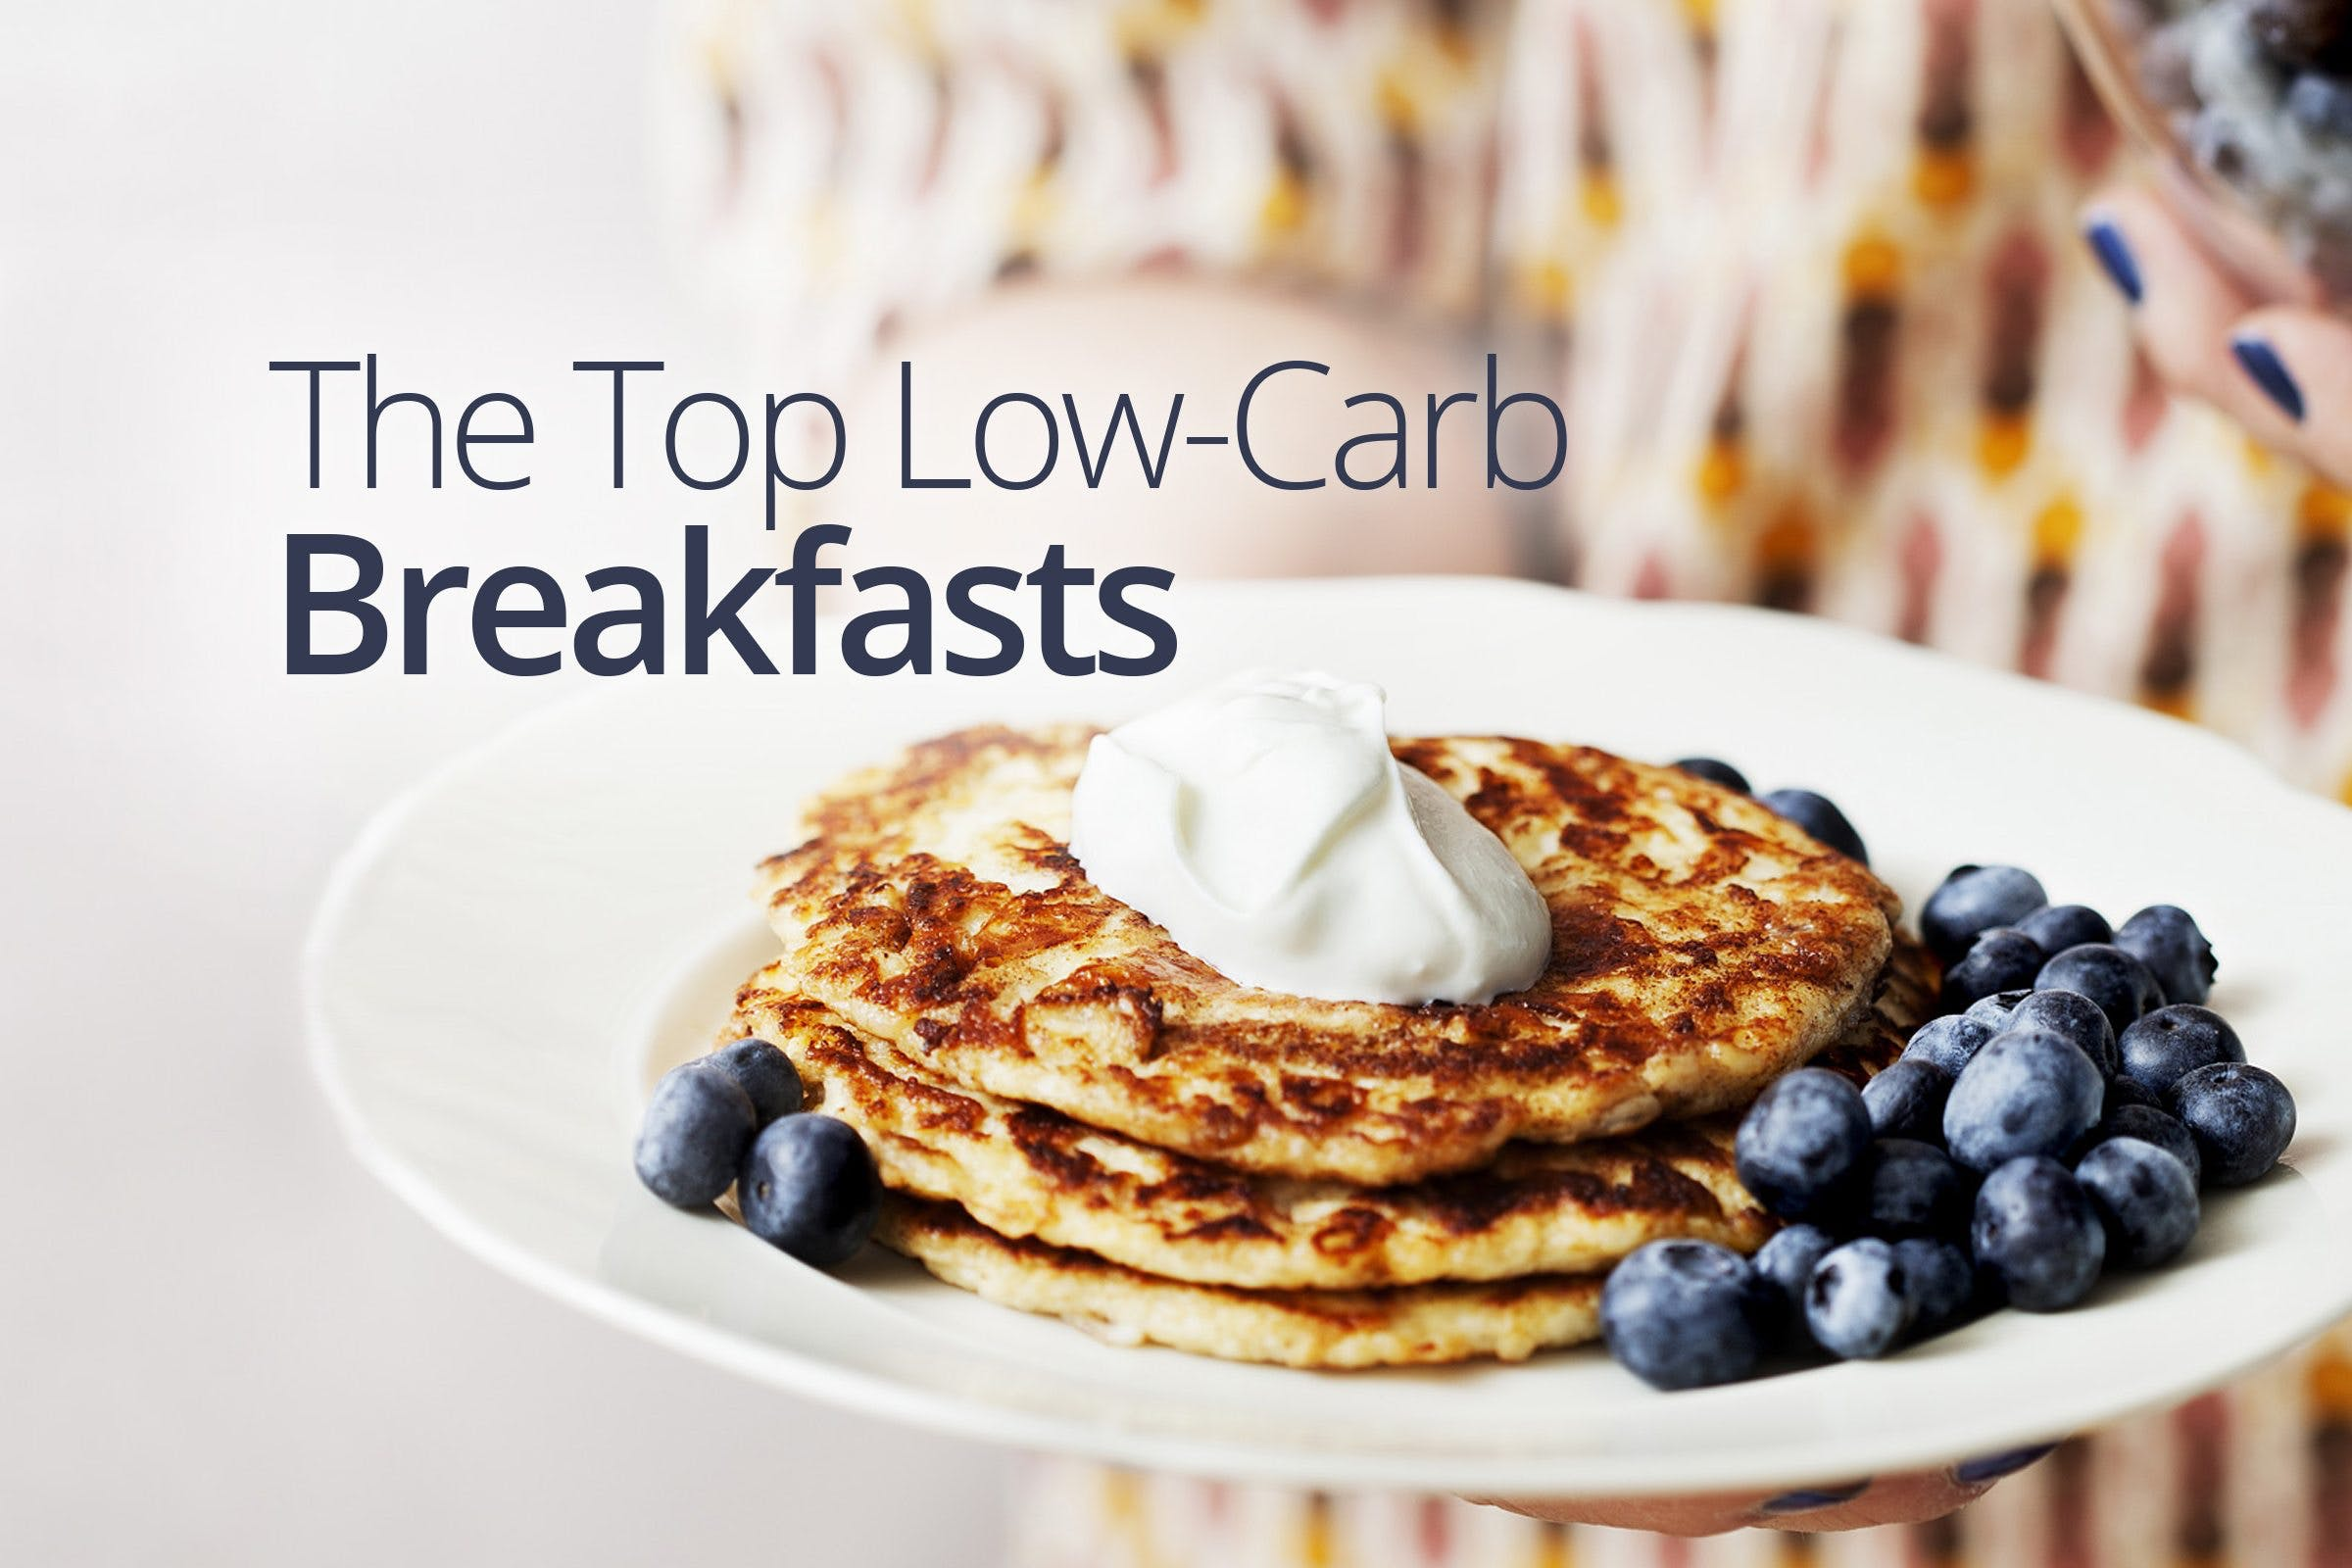 Low-carb breakfast favorites